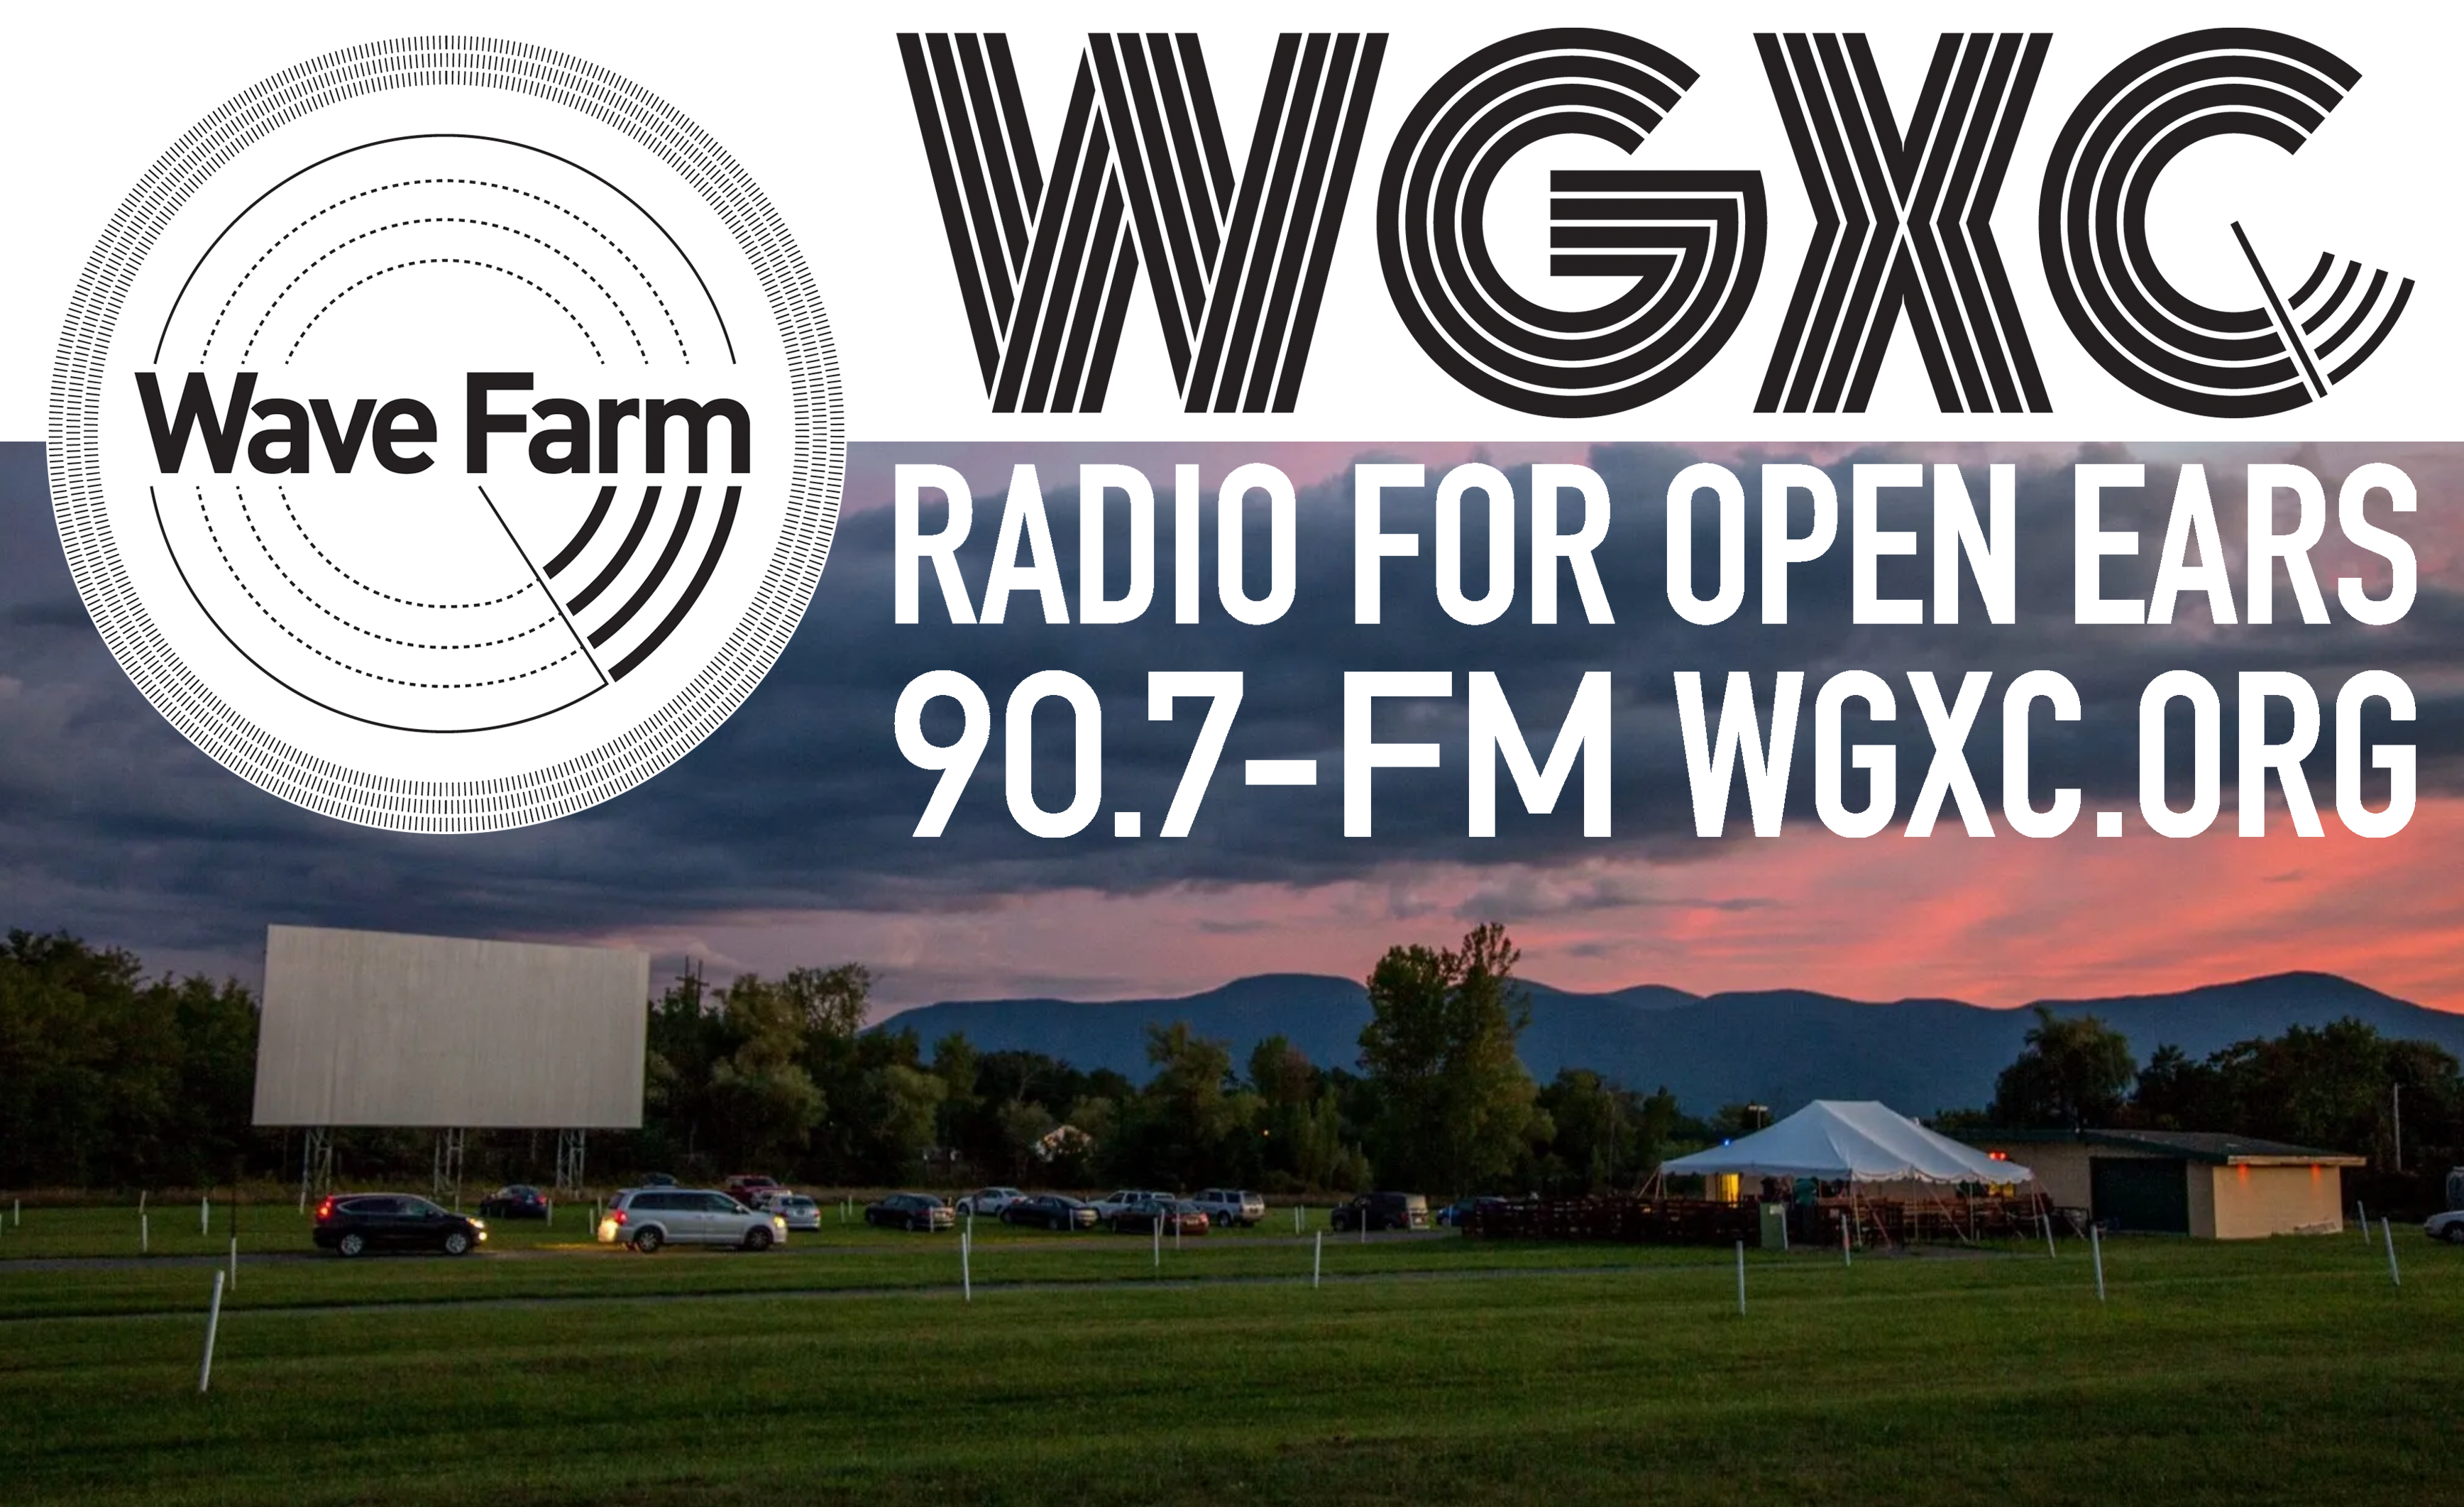 WGXC 10th Anniversary Drive-in Event Image